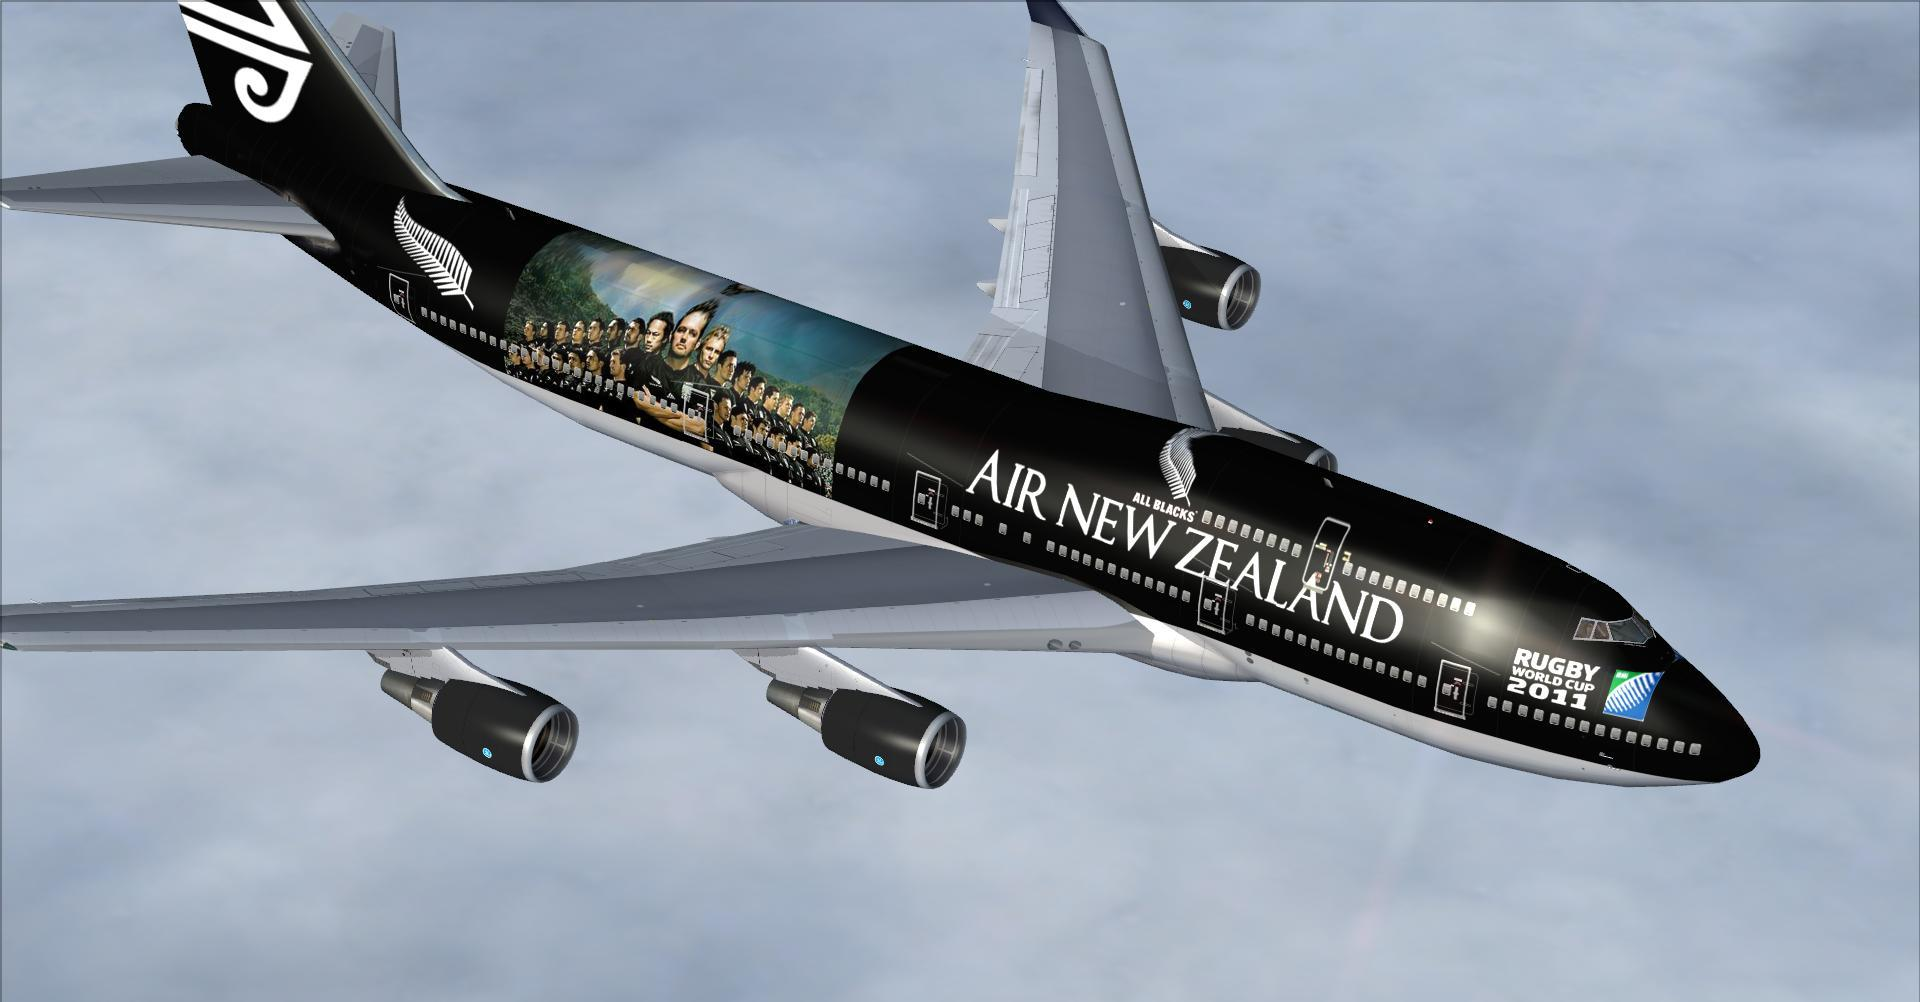 air new zealand - photo #37